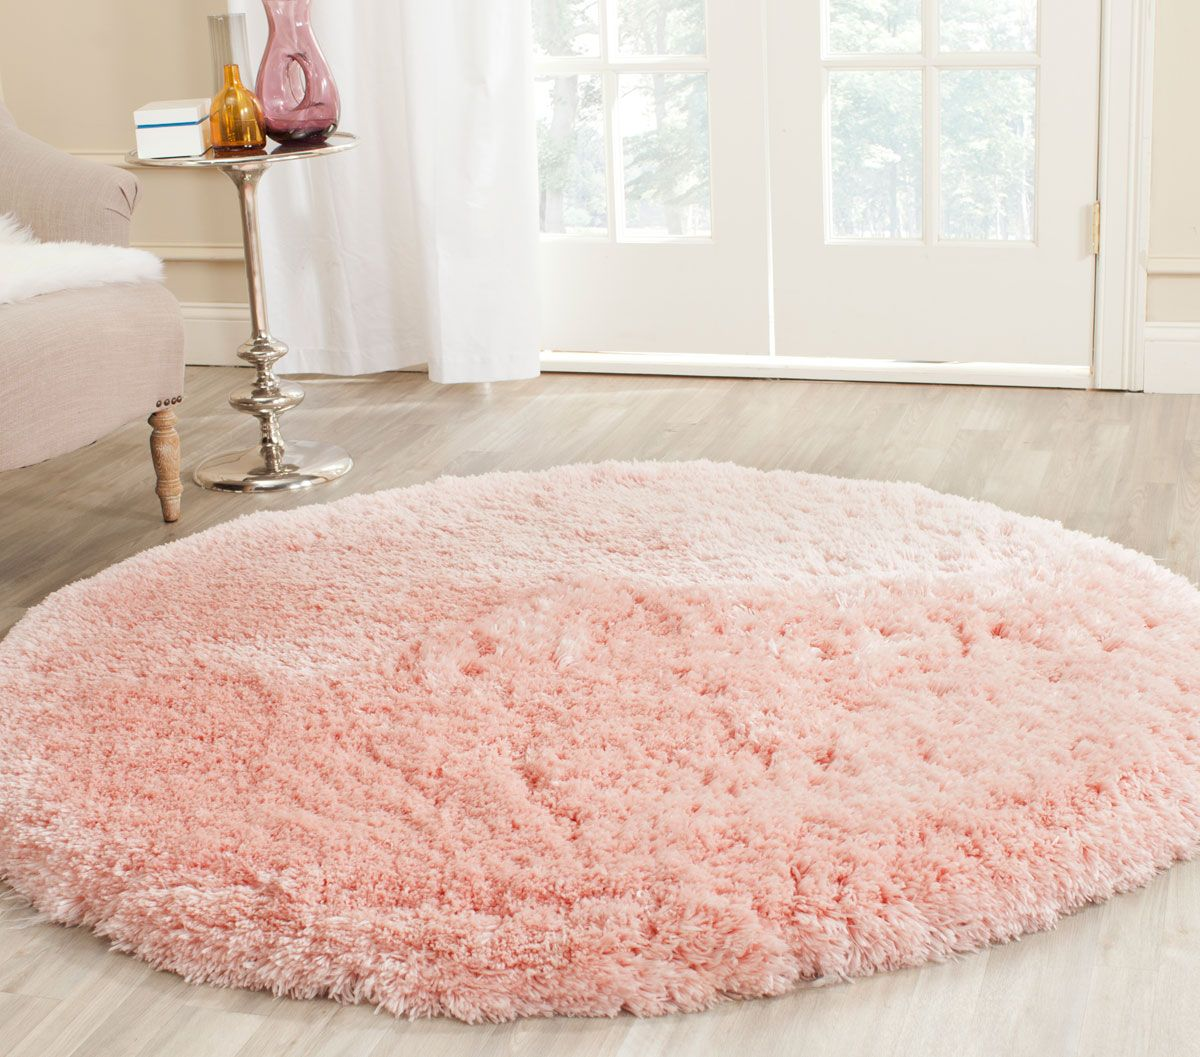 People Who Have Decided To A Fluffy Area Rug Usually Don T Worry About The Possibility Of Allergies Rugs Are Hypoallergenic Flooring